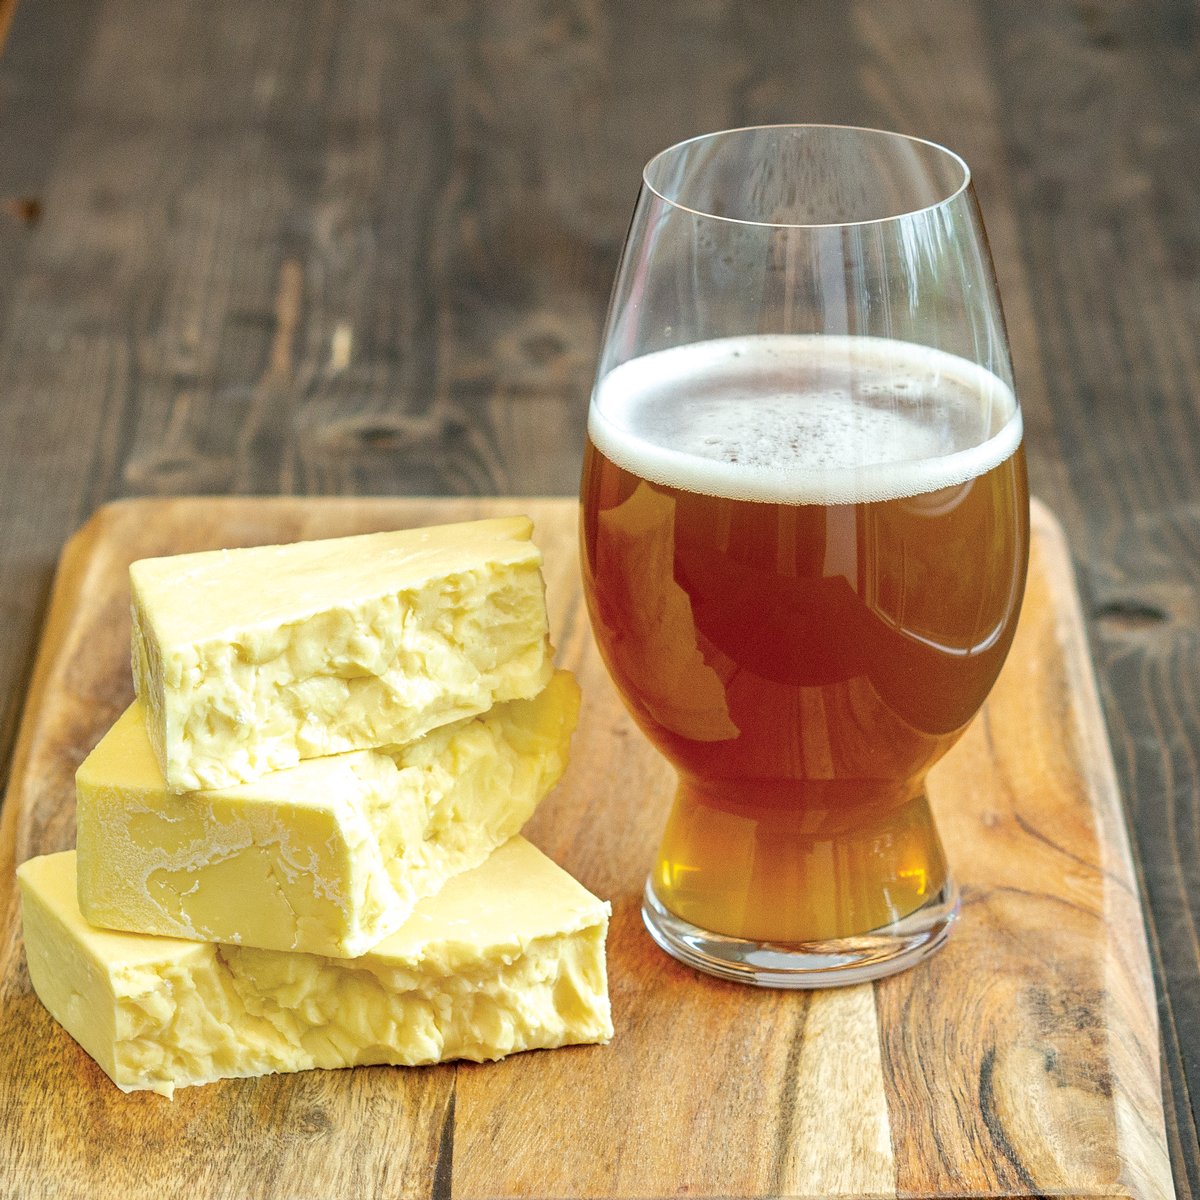 English Cheese & Beer Pairings